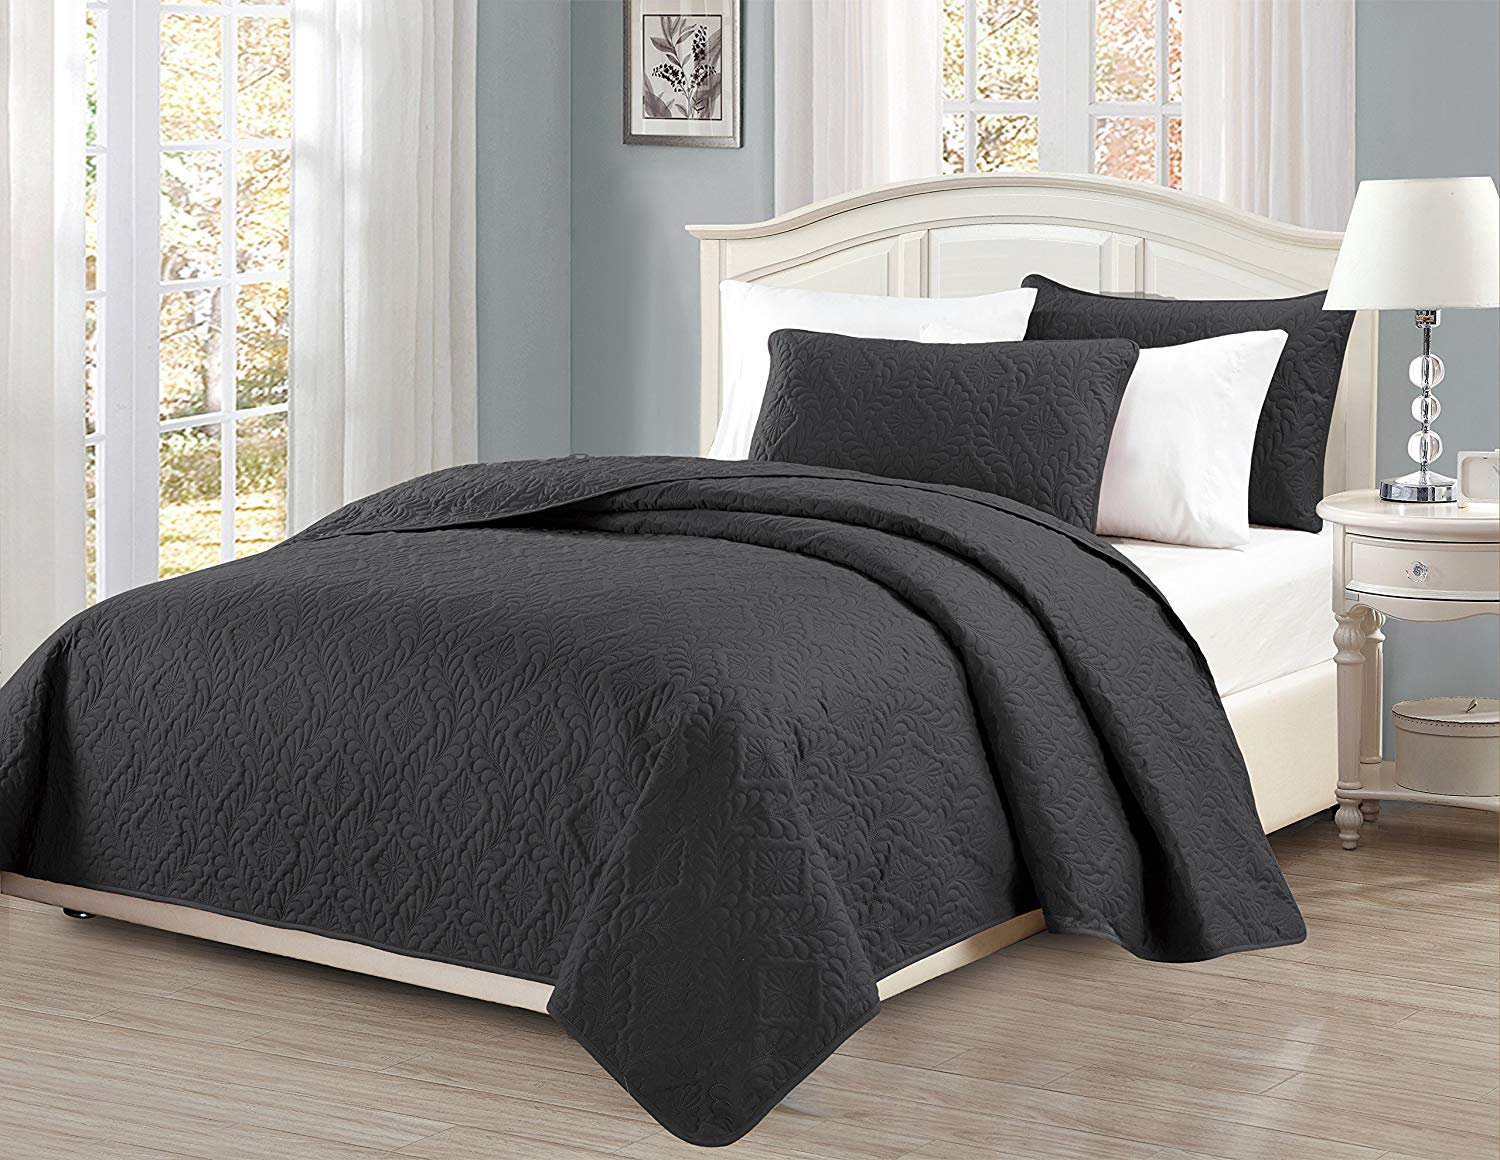 Fancy Collection 3pc King/California King Oversize Bedspread Coverlet Set Embossed Solid Dark Gray/Charcoal New